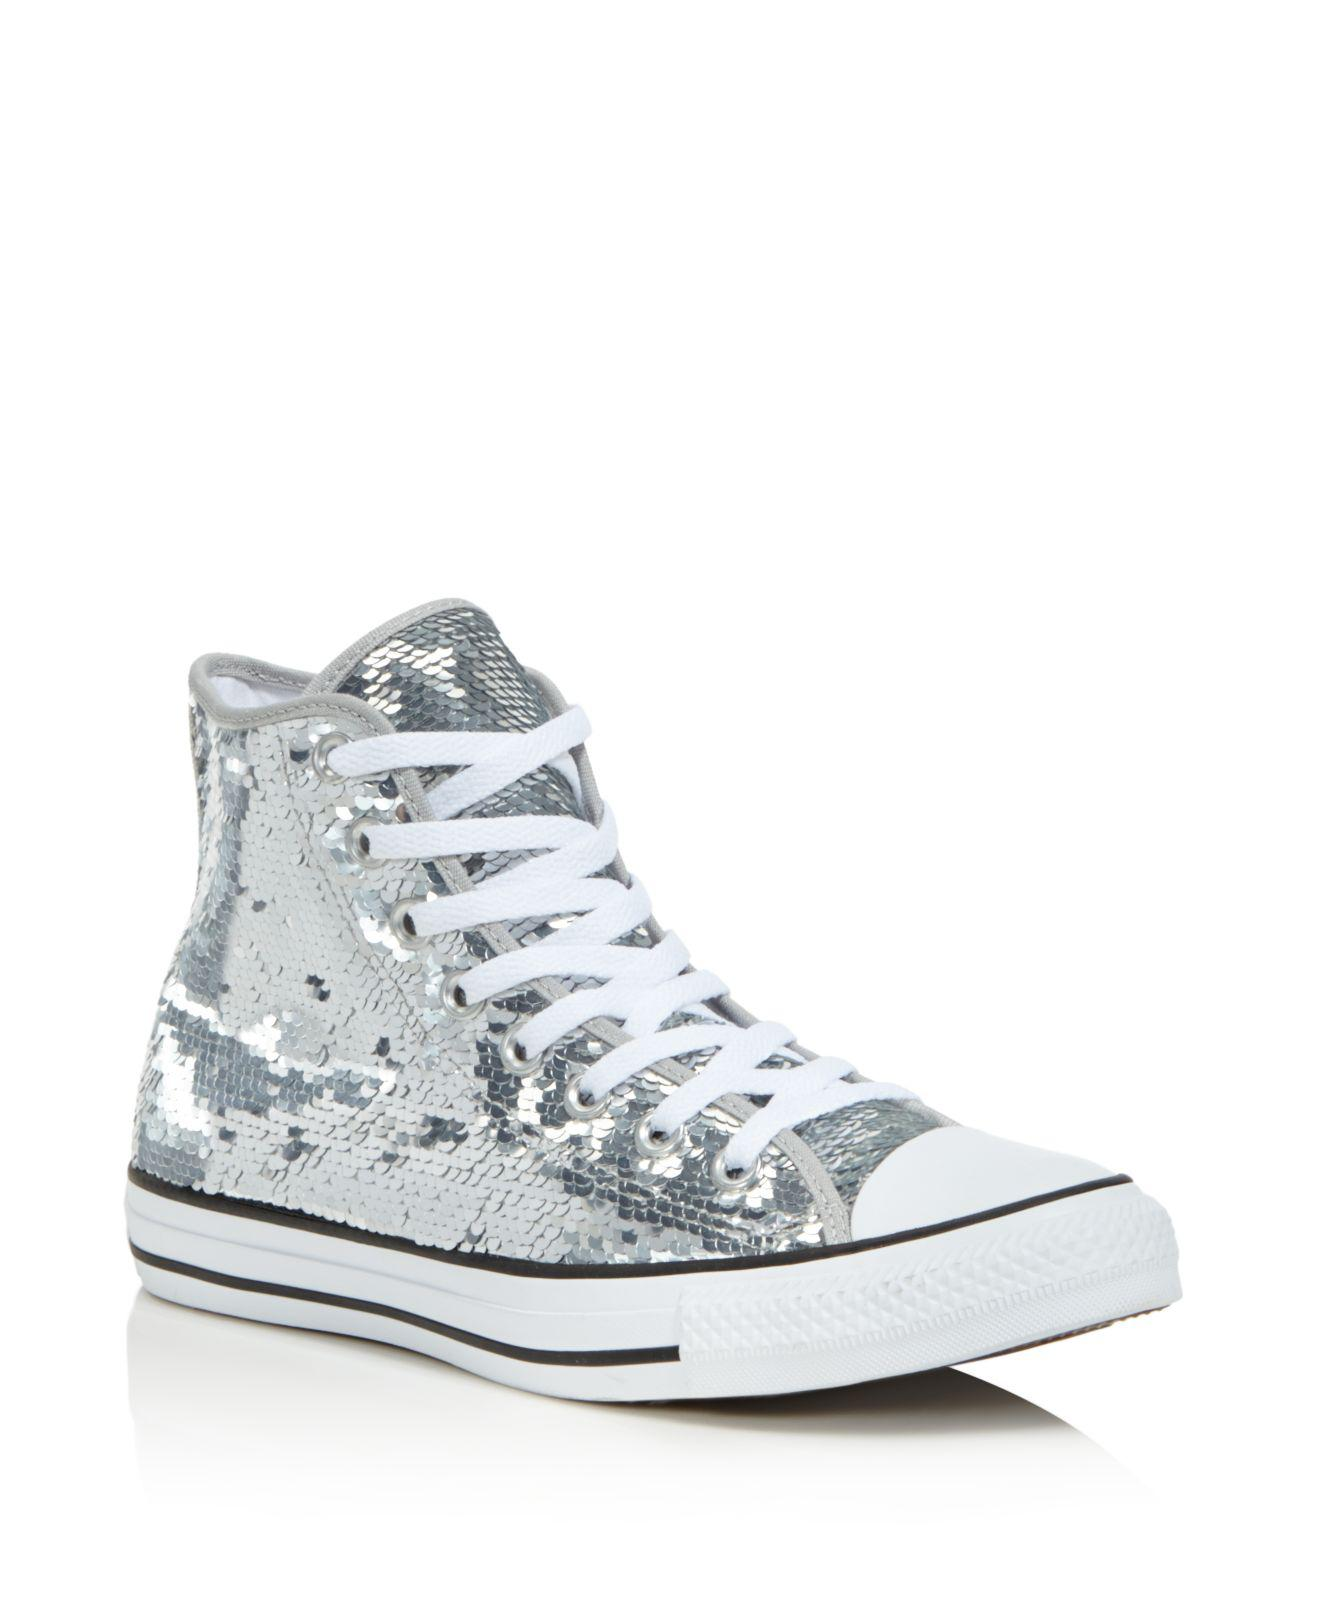 f1ec685943da Gallery. Previously sold at  Bloomingdale s · Women s Converse Chuck Taylor  Women s Converse Chuck Taylor All Star ...